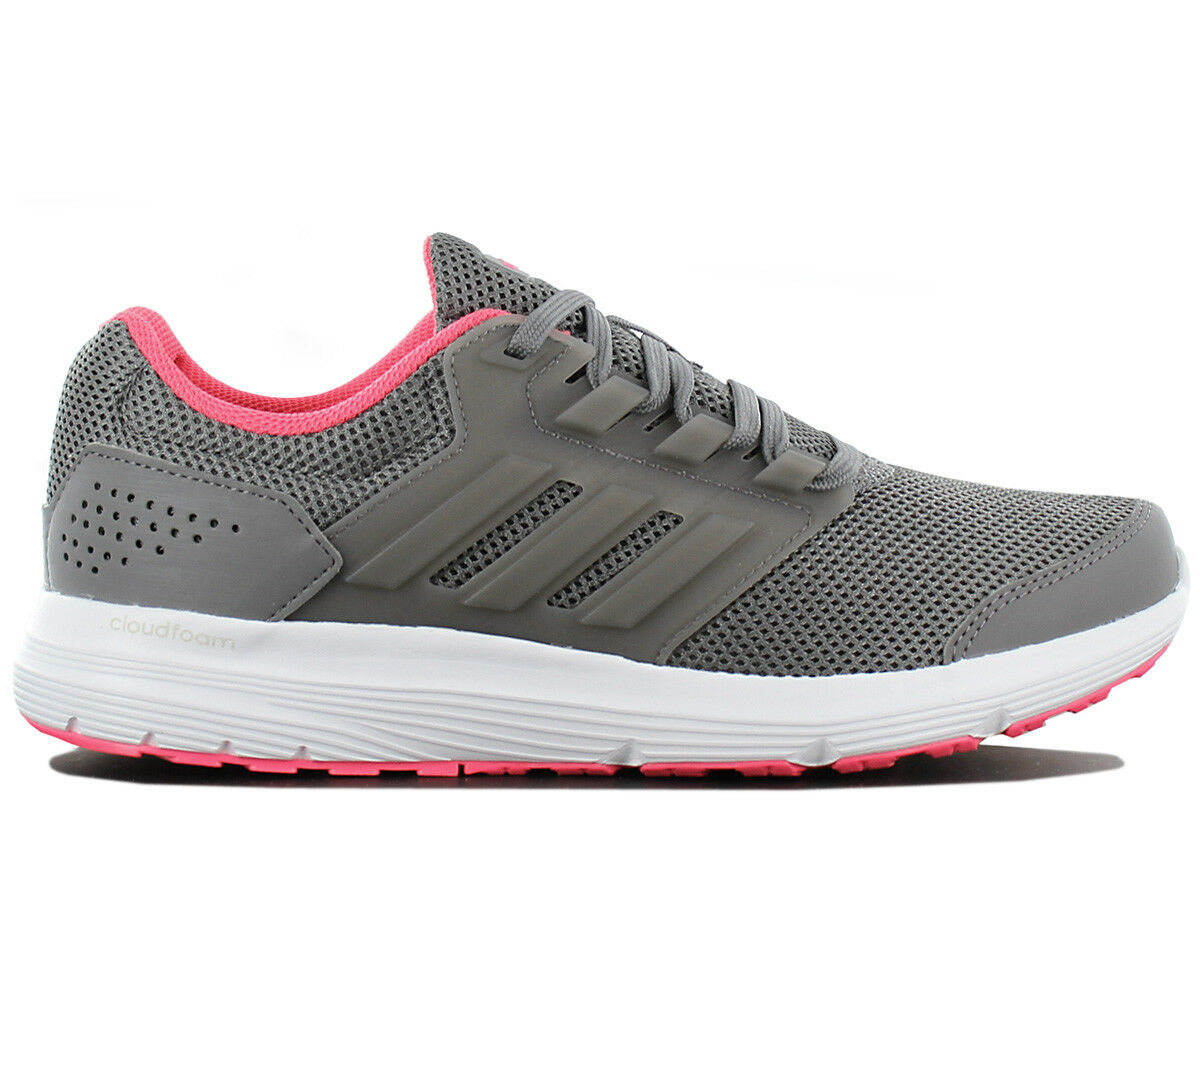 Adidas Galaxy 4 Women's Running Fitness shoes Running Sports shoes Cp8837 Grey